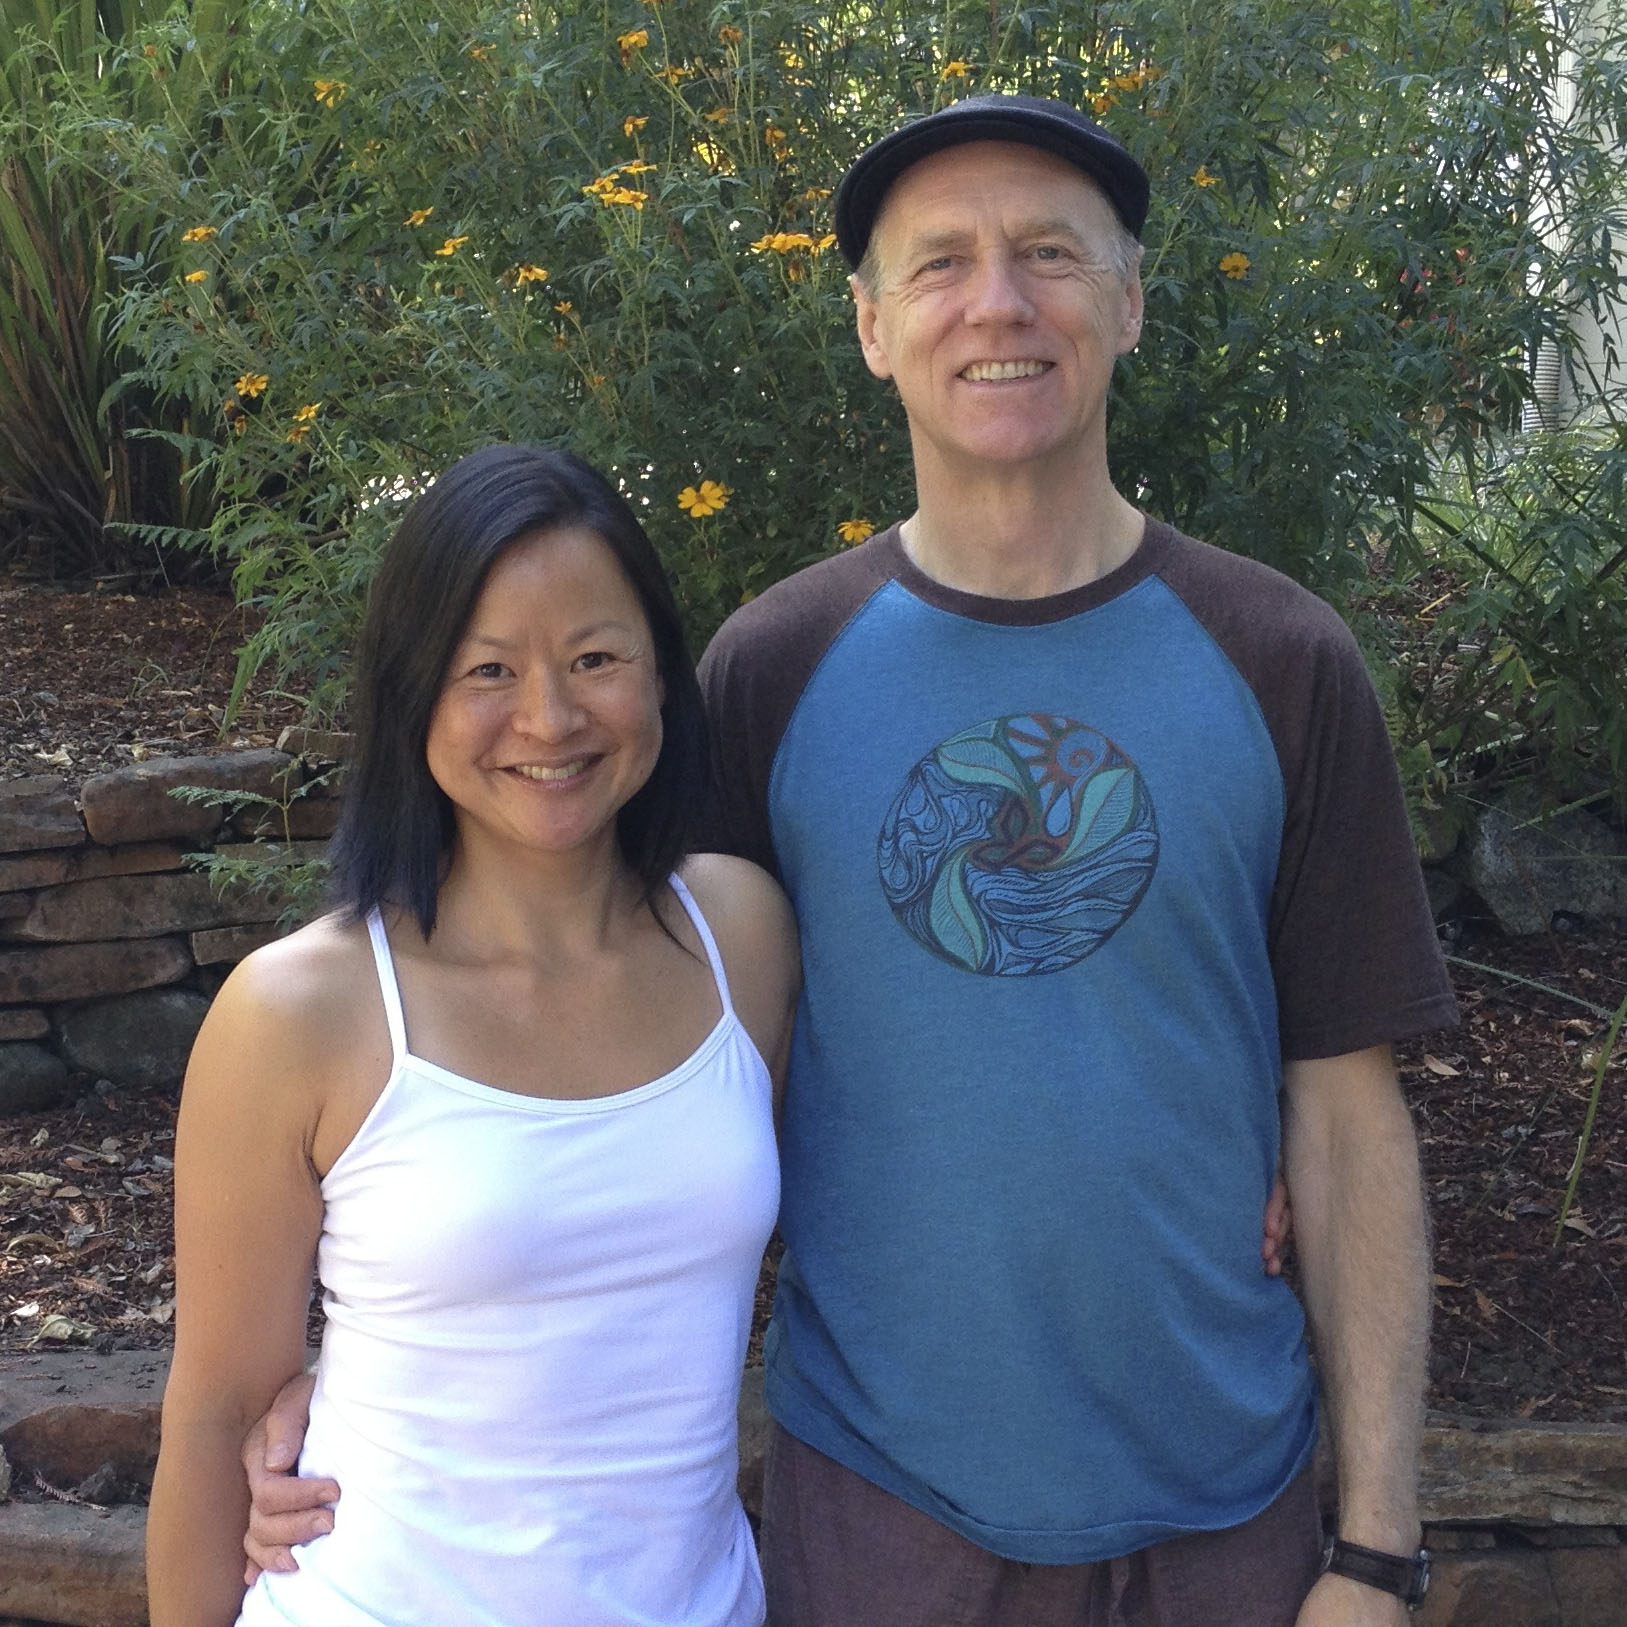 Bernie Clark & Karin at The Land of Medicine Buddha in Soquel, California